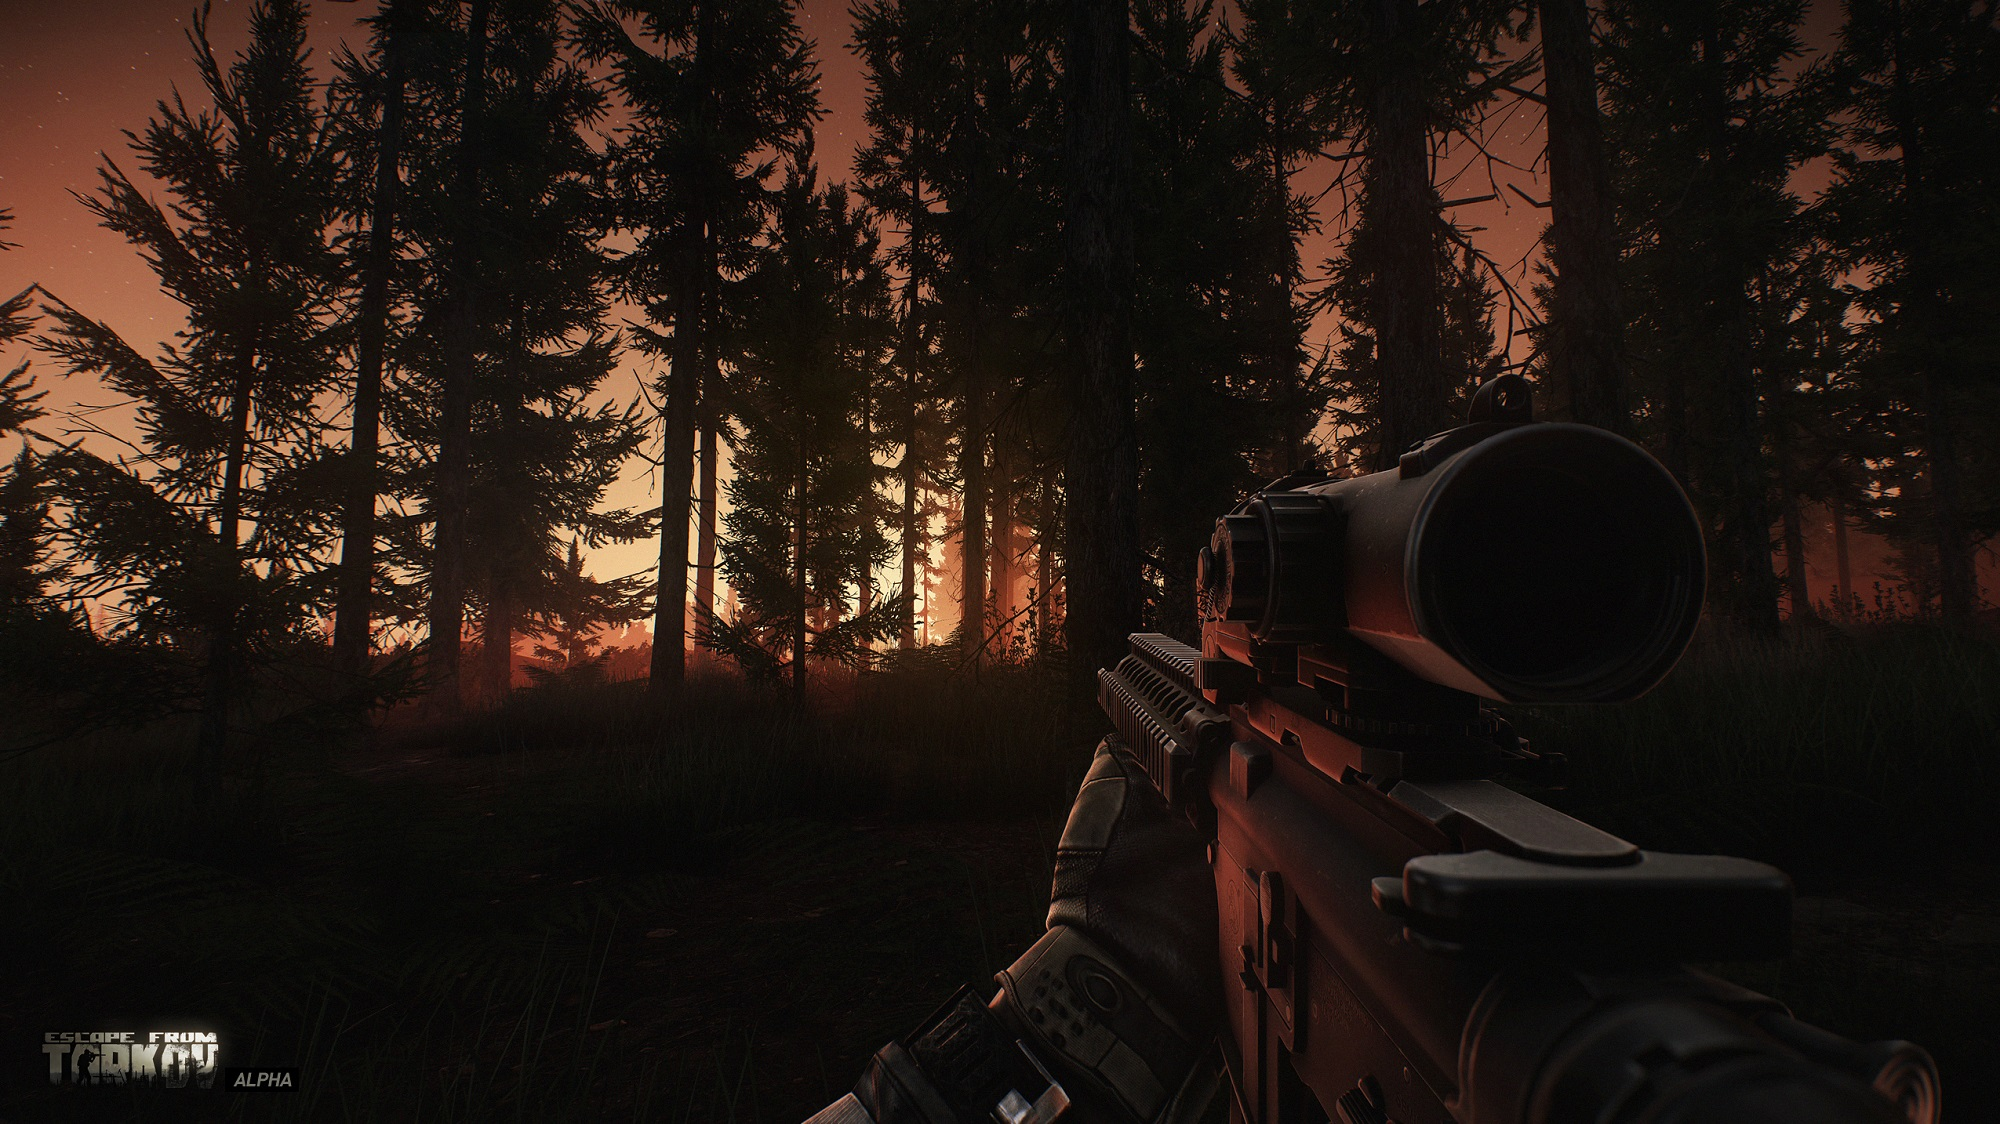 54584_07_escape-tarkov-looks-one-best-games